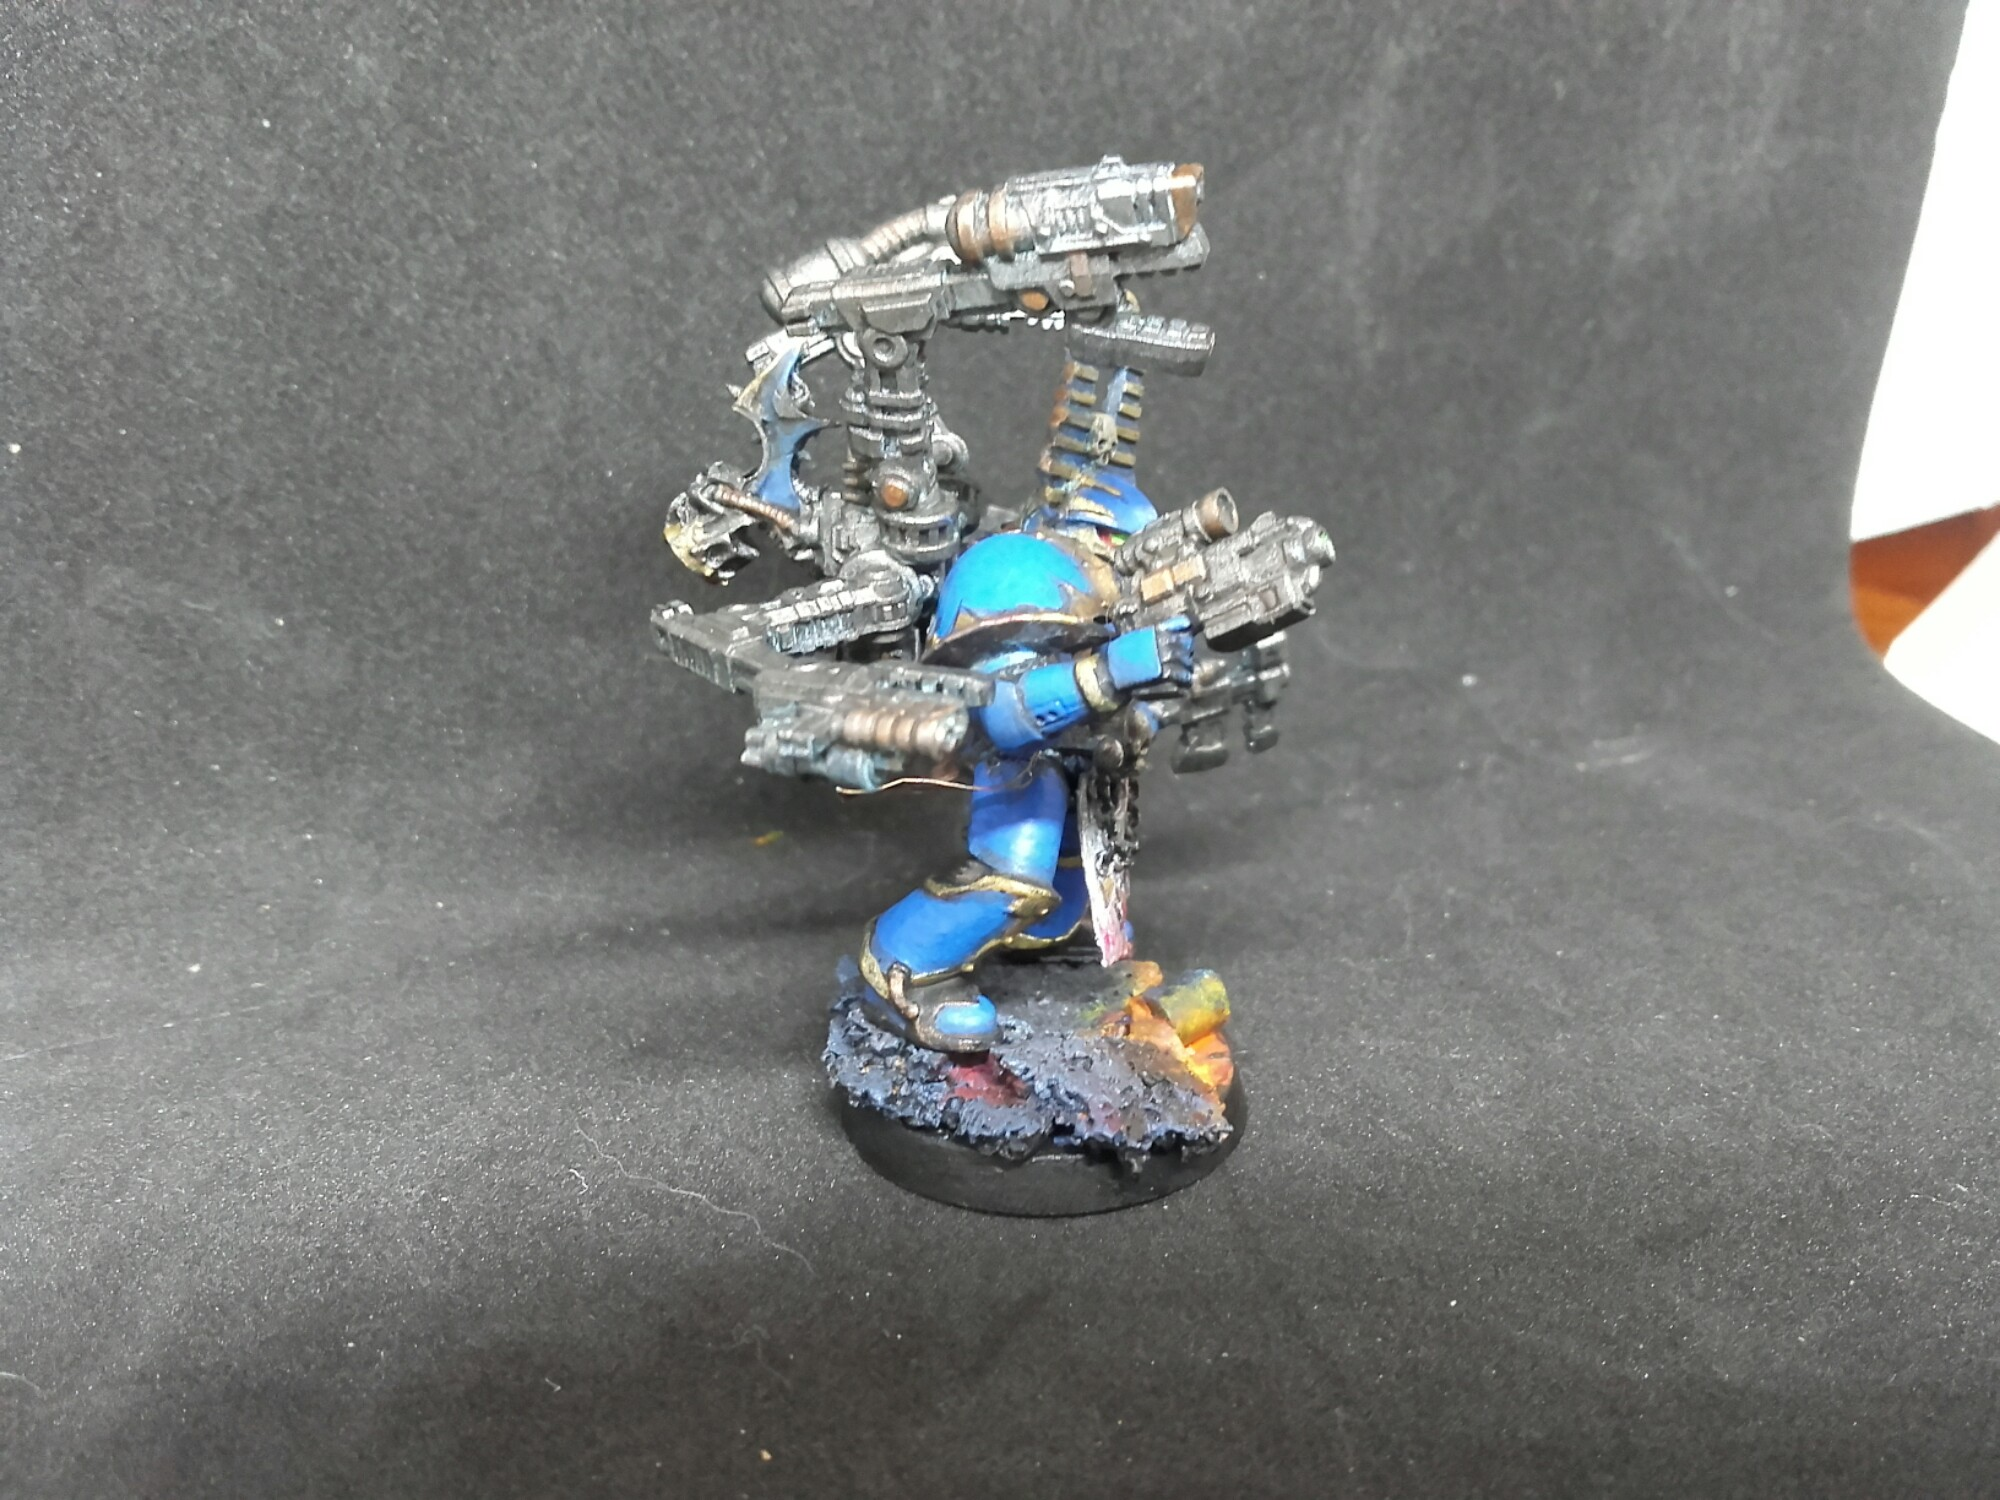 Thousand Sons Warpsmith pistol